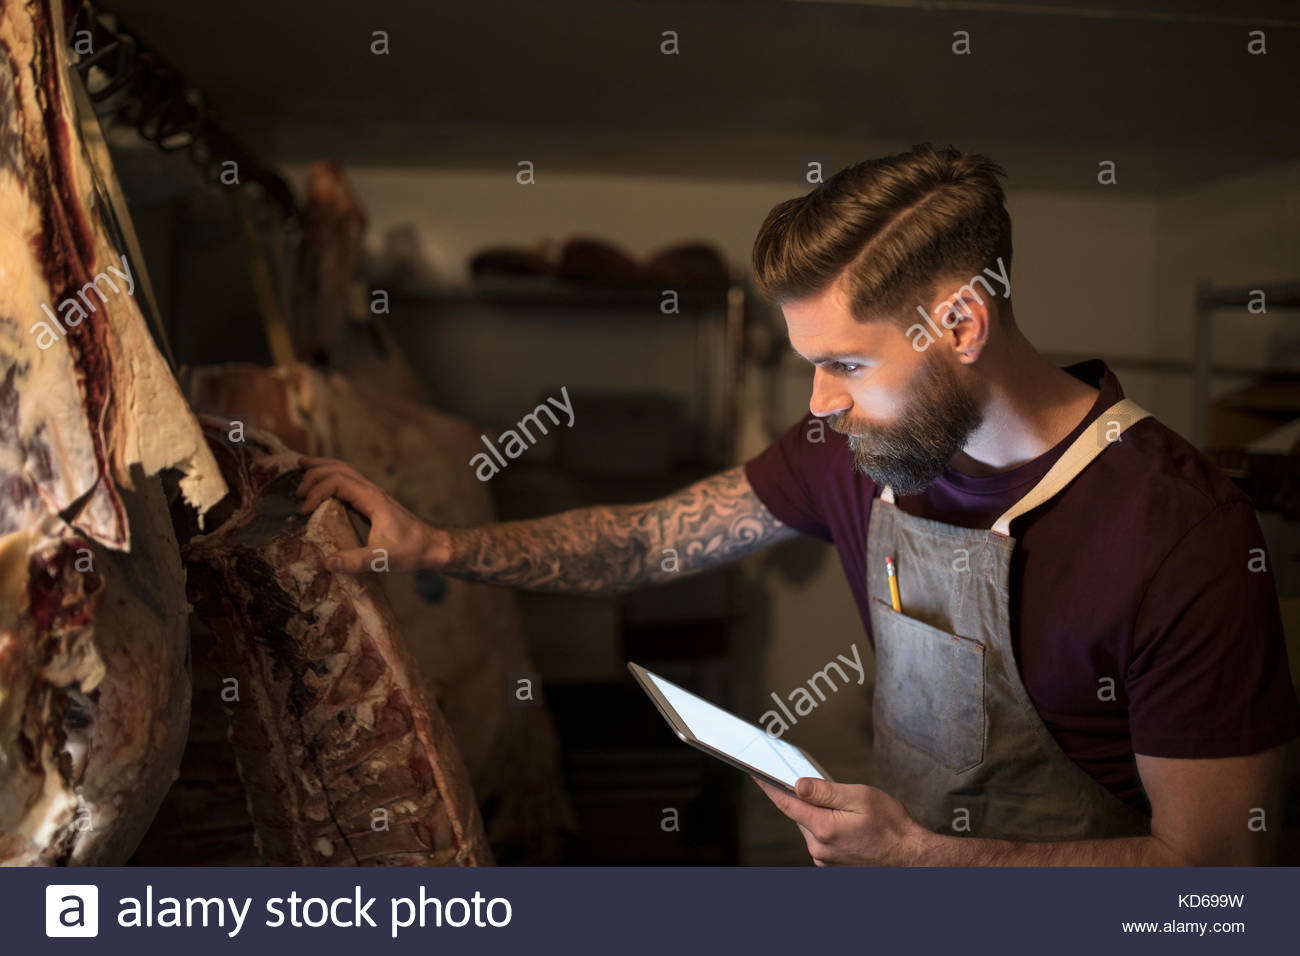 Male butcher with digital tablet examining meat slabs dry aging - Stock Image